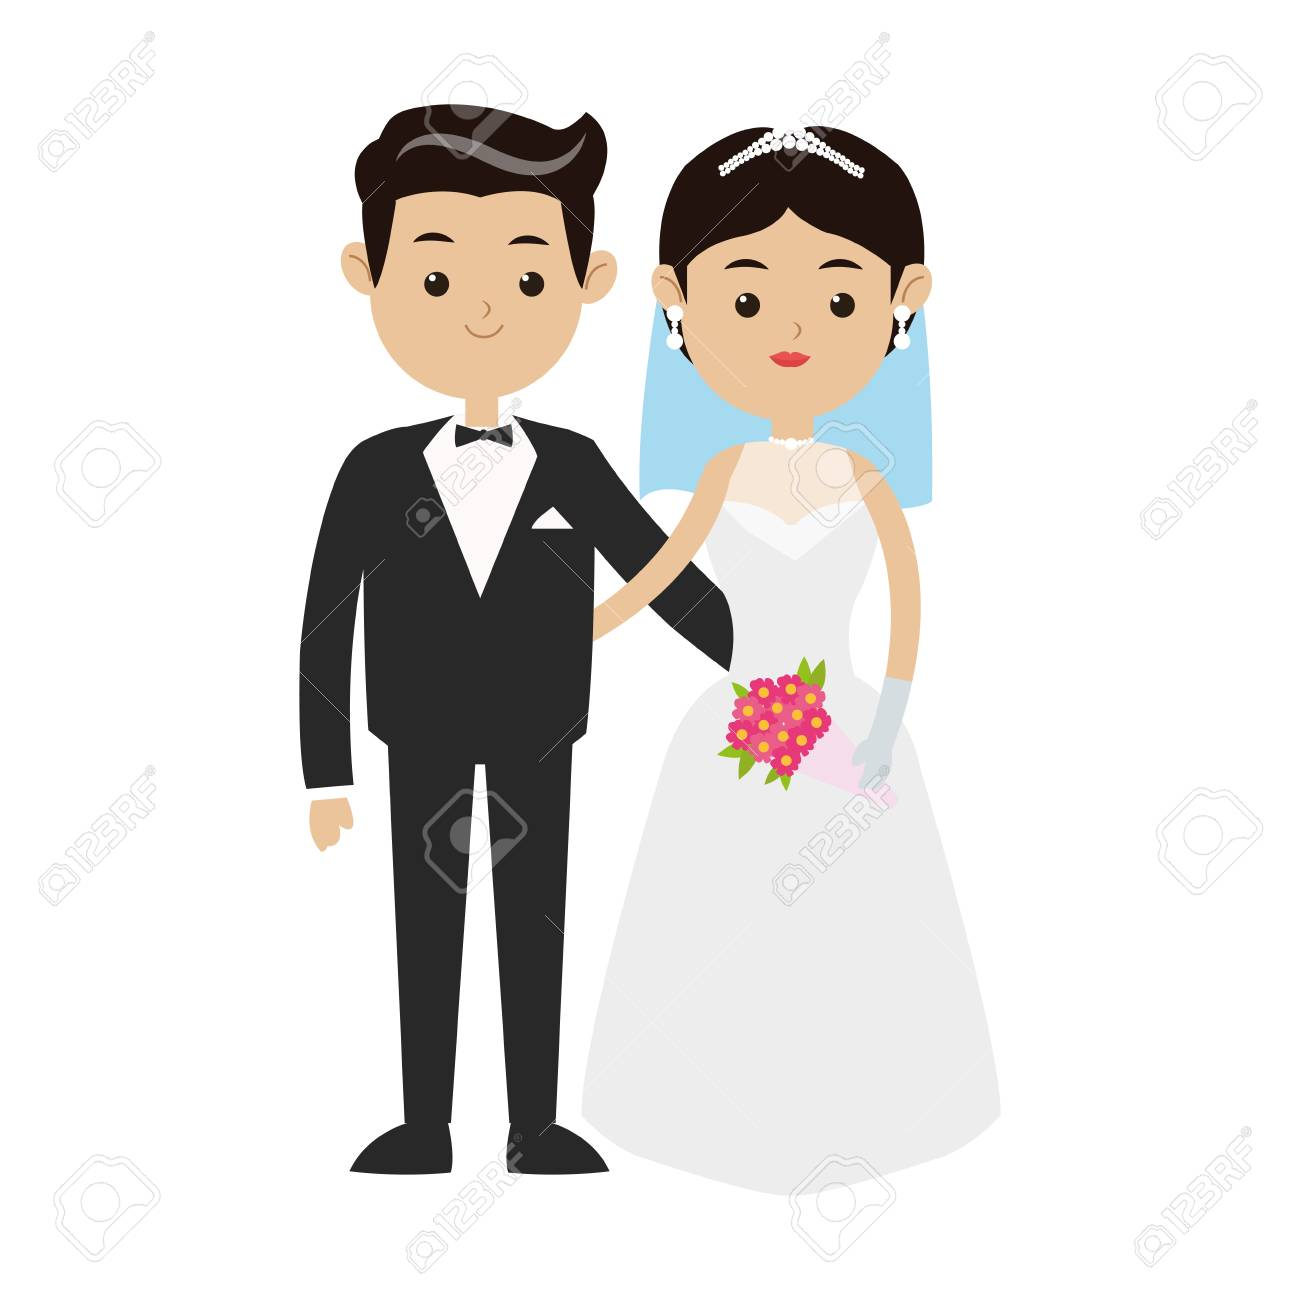 Wedding Couple Cartoon Icon Over White Background Colorful Design Royalty Free Cliparts Vectors And Stock Illustration Image 76008519